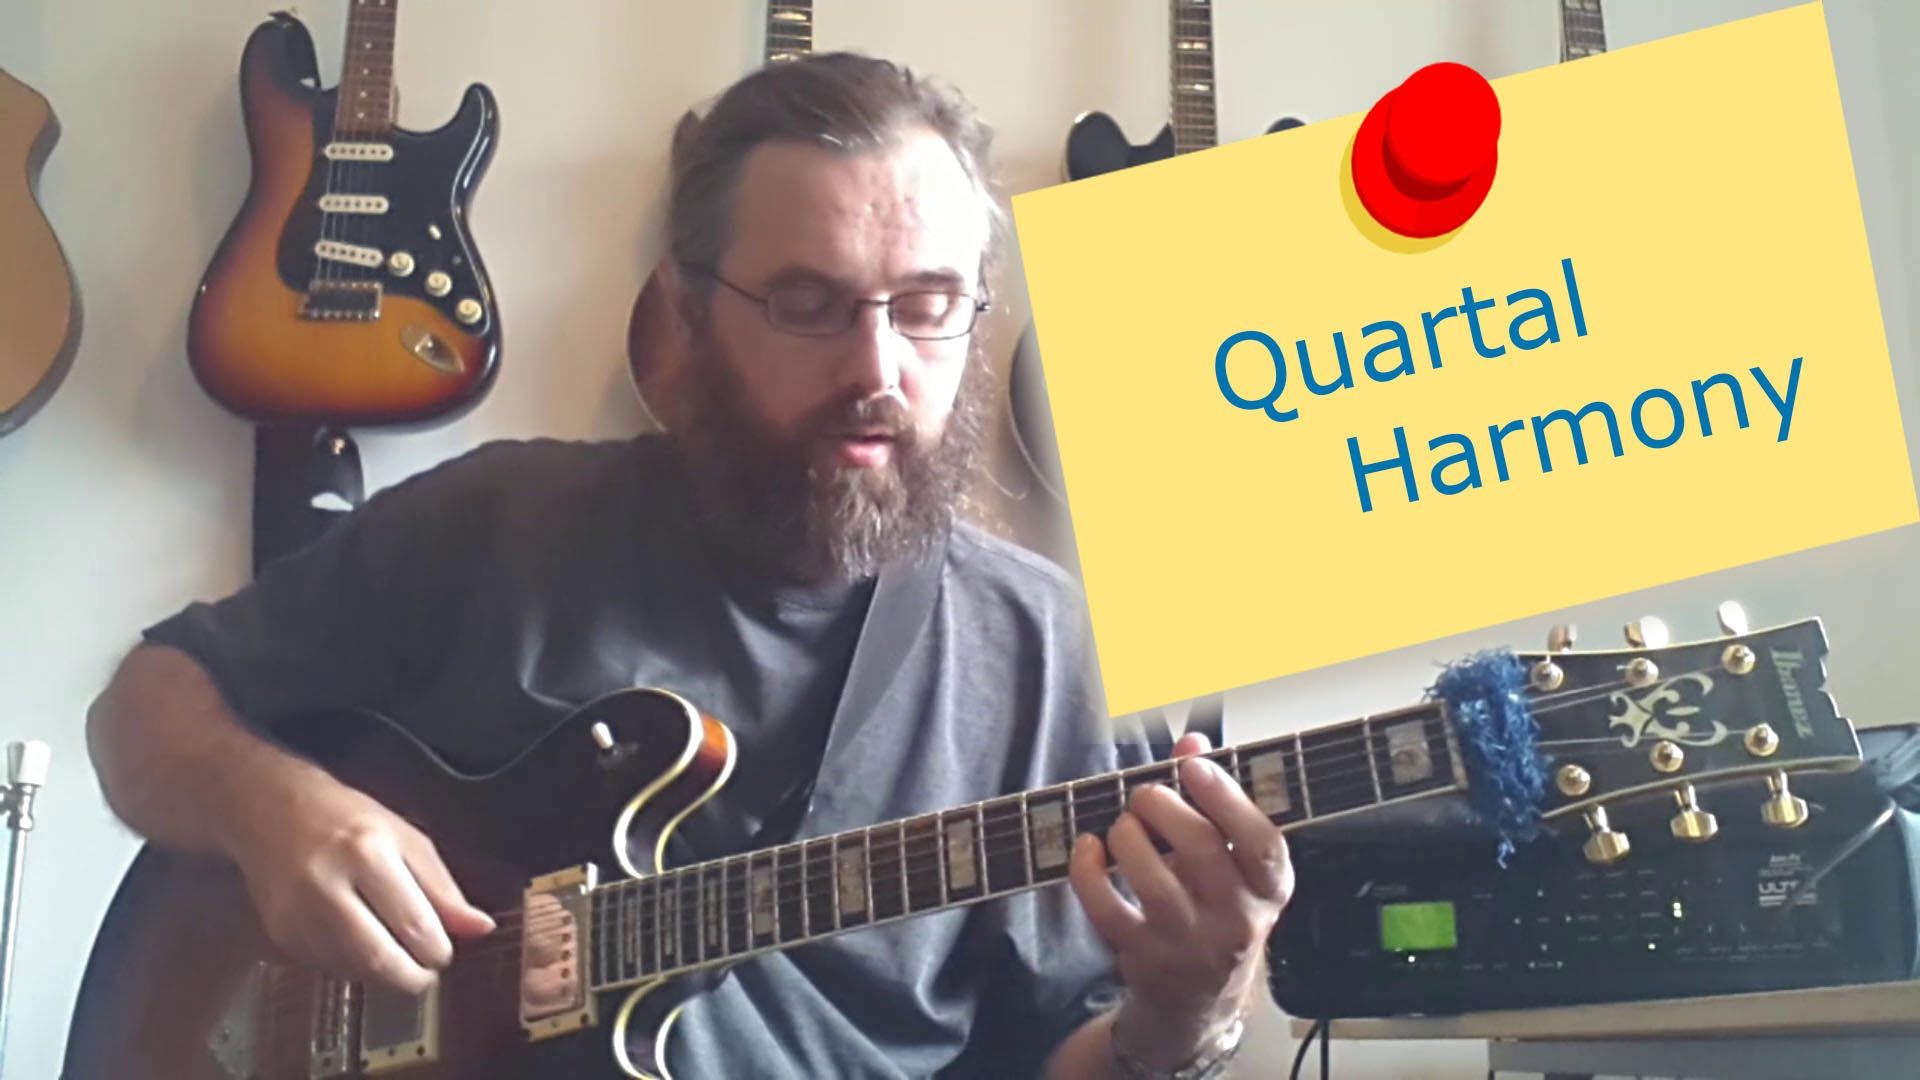 In this lesson I want to demonstrate how I use quartal